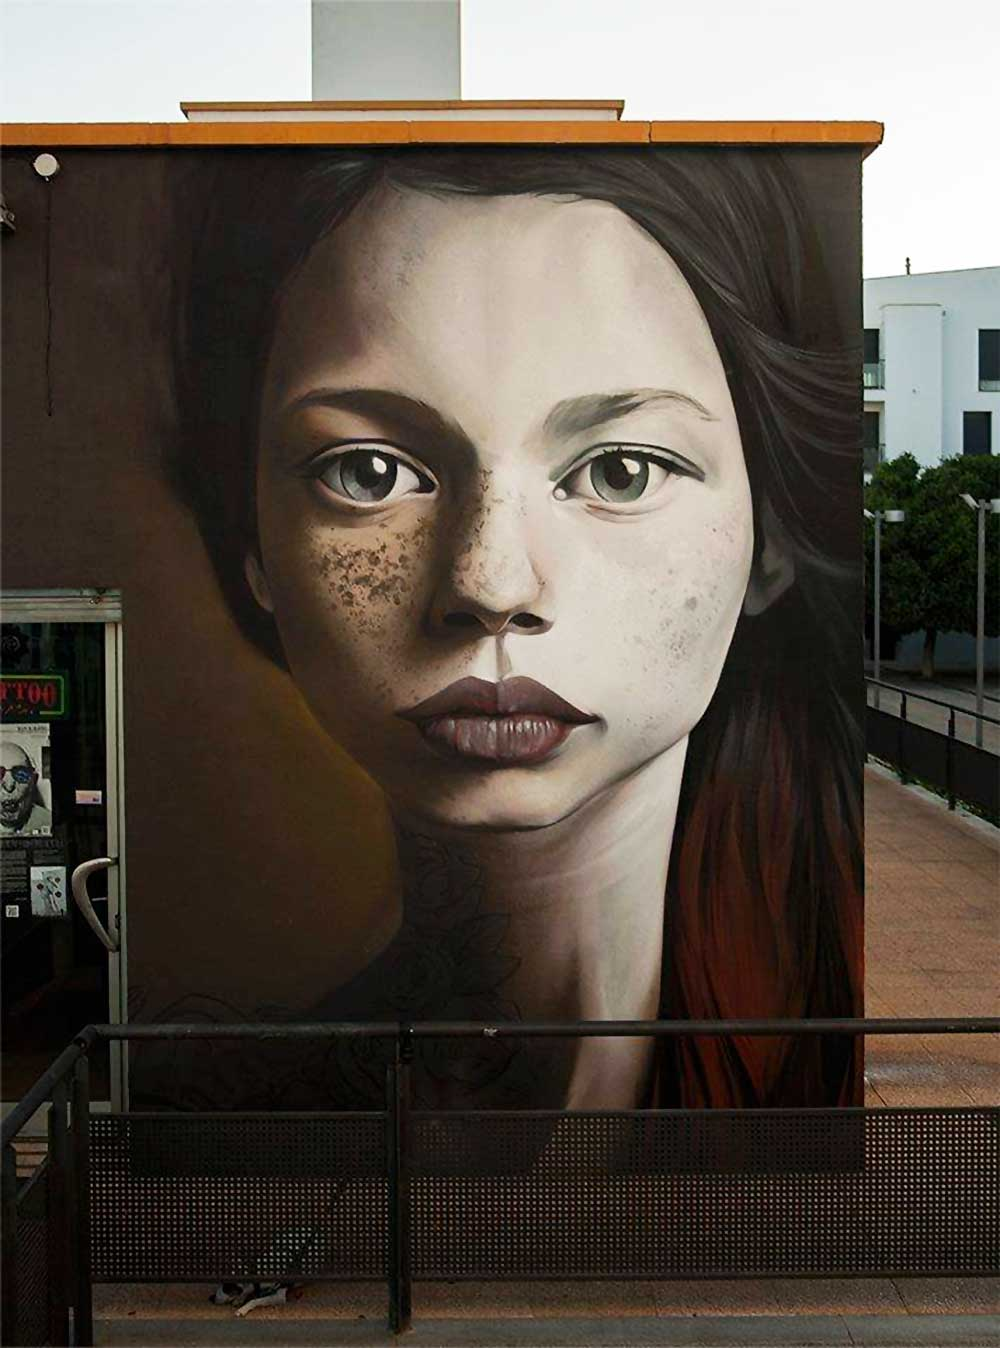 Manomatic Street Art